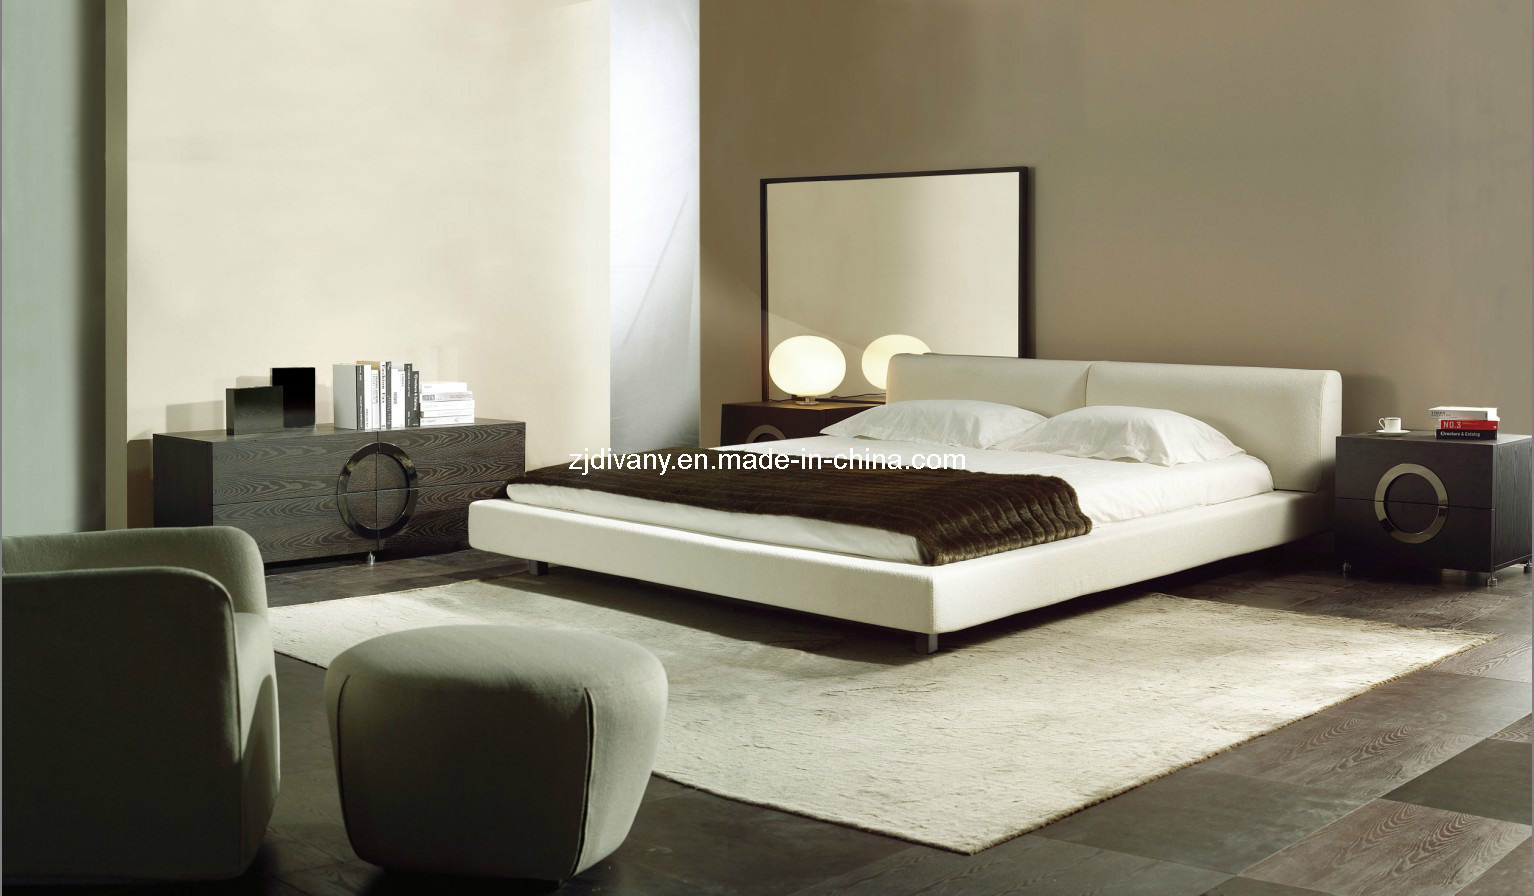 China Modern Italian Style Bed Set Bedroom Furniture Photos Pictures. home  ...